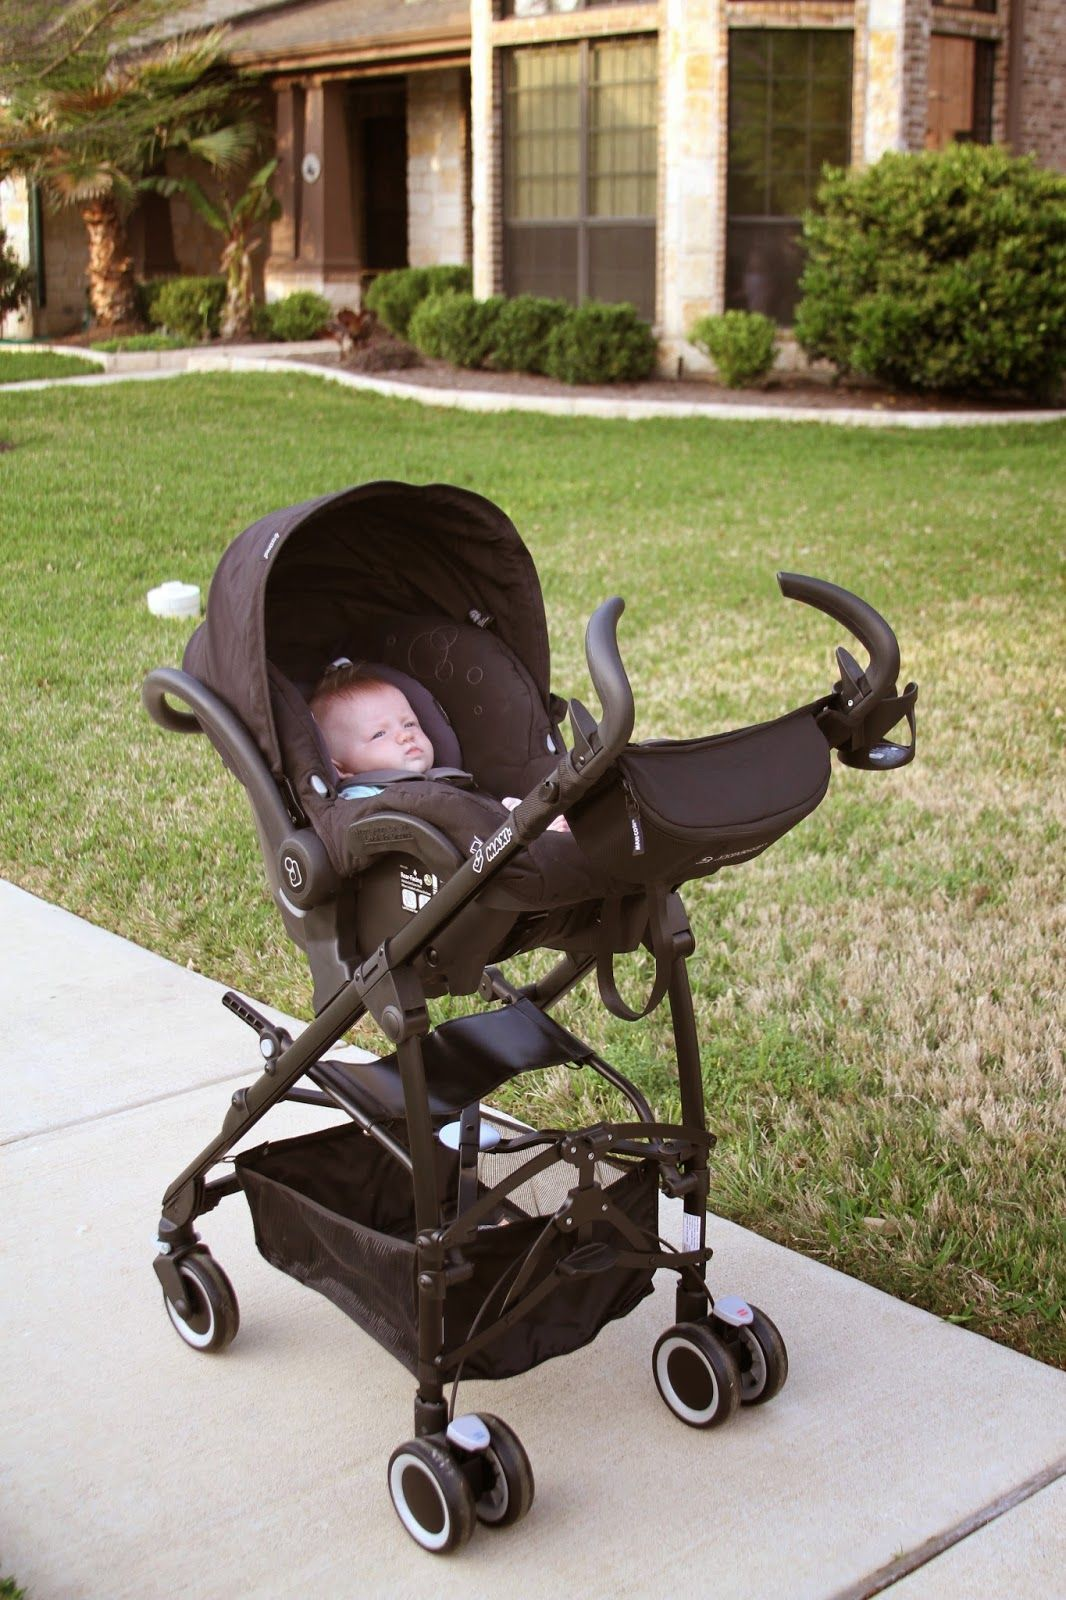 Maxi Cosi Mico NXT Infant Car Seat Taxi Carrier Review